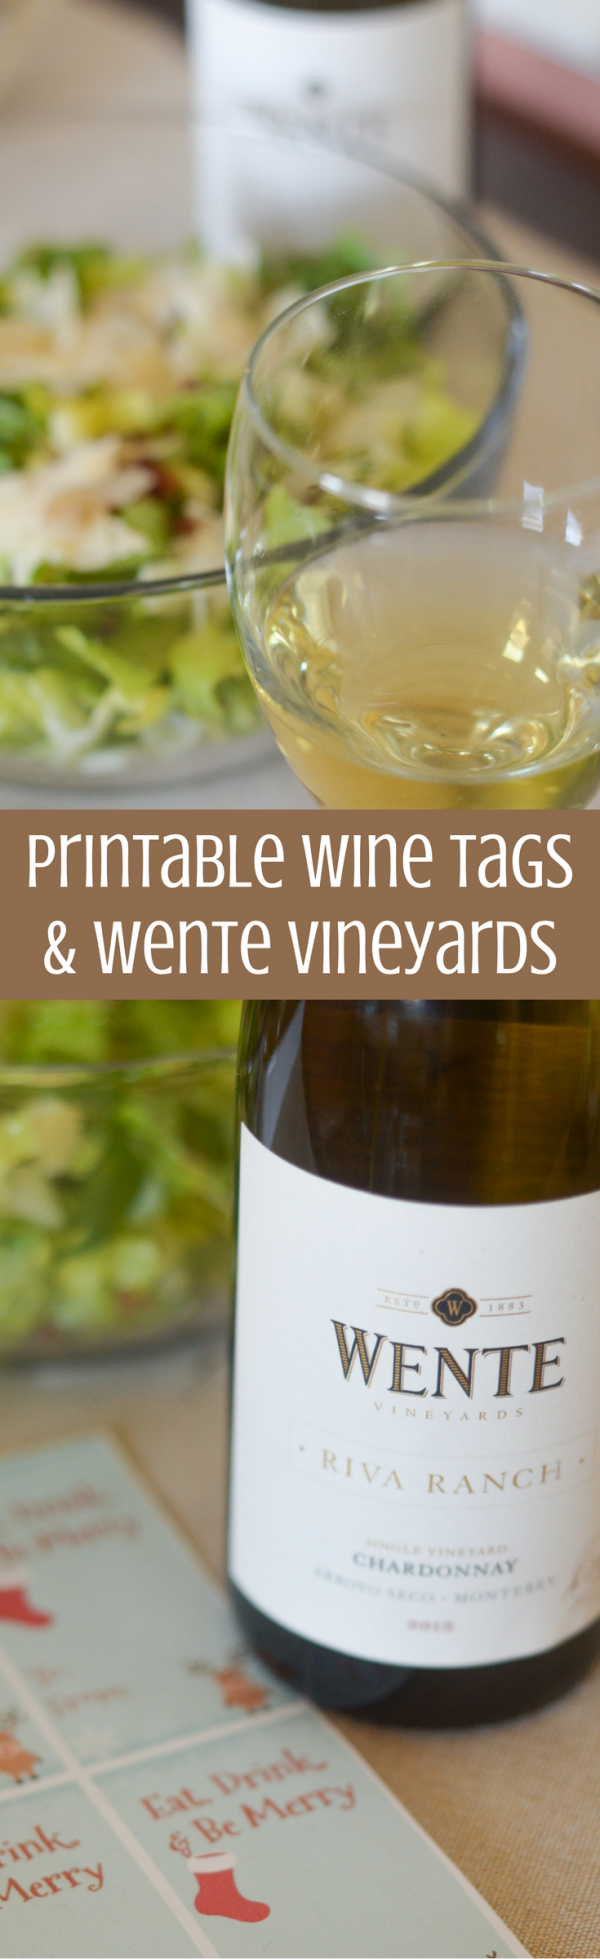 Printable Wine Tag & Wente Vineyards #MakeTime #ad